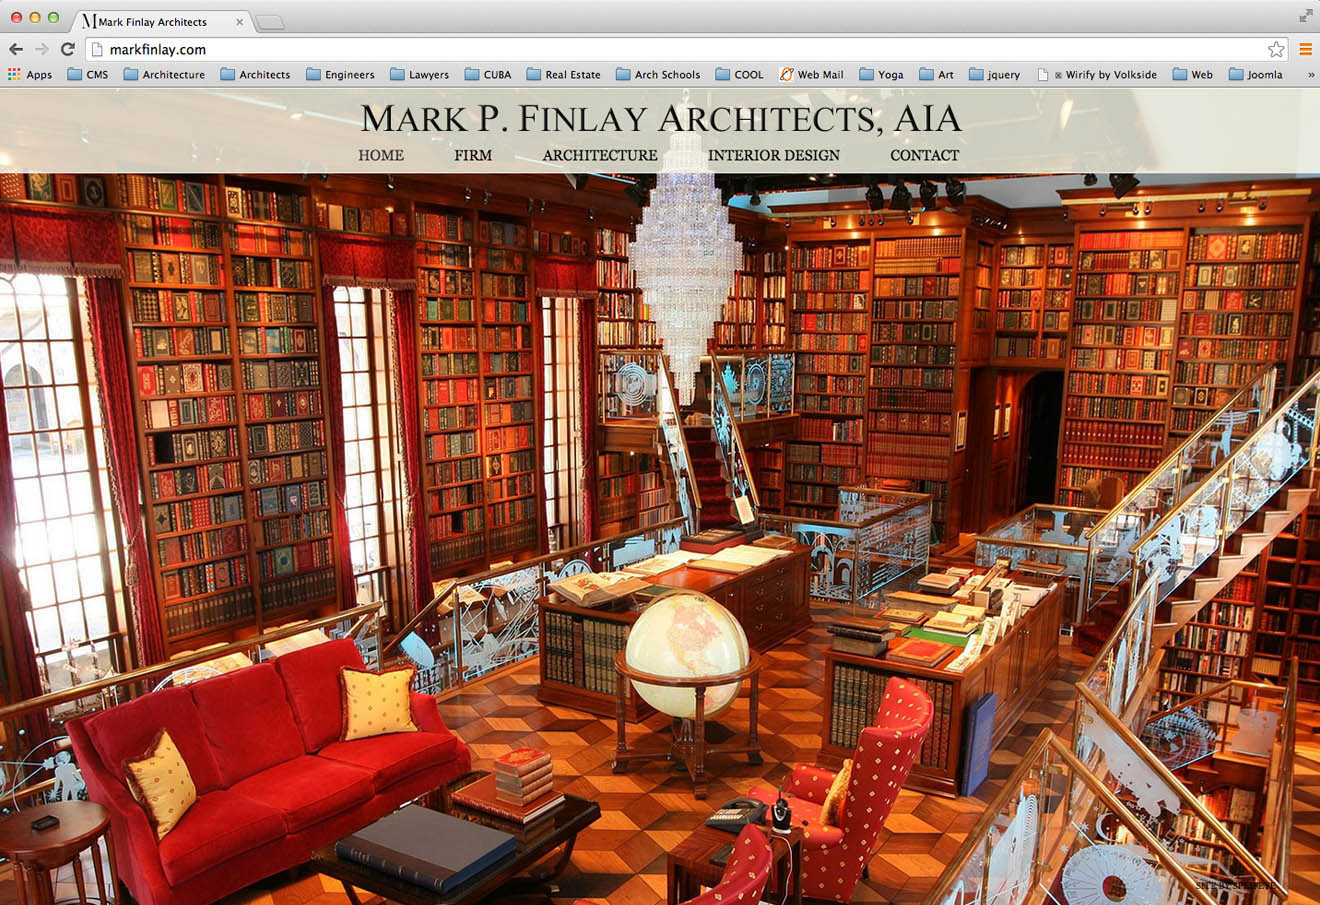 Mark P. Finlay Architects